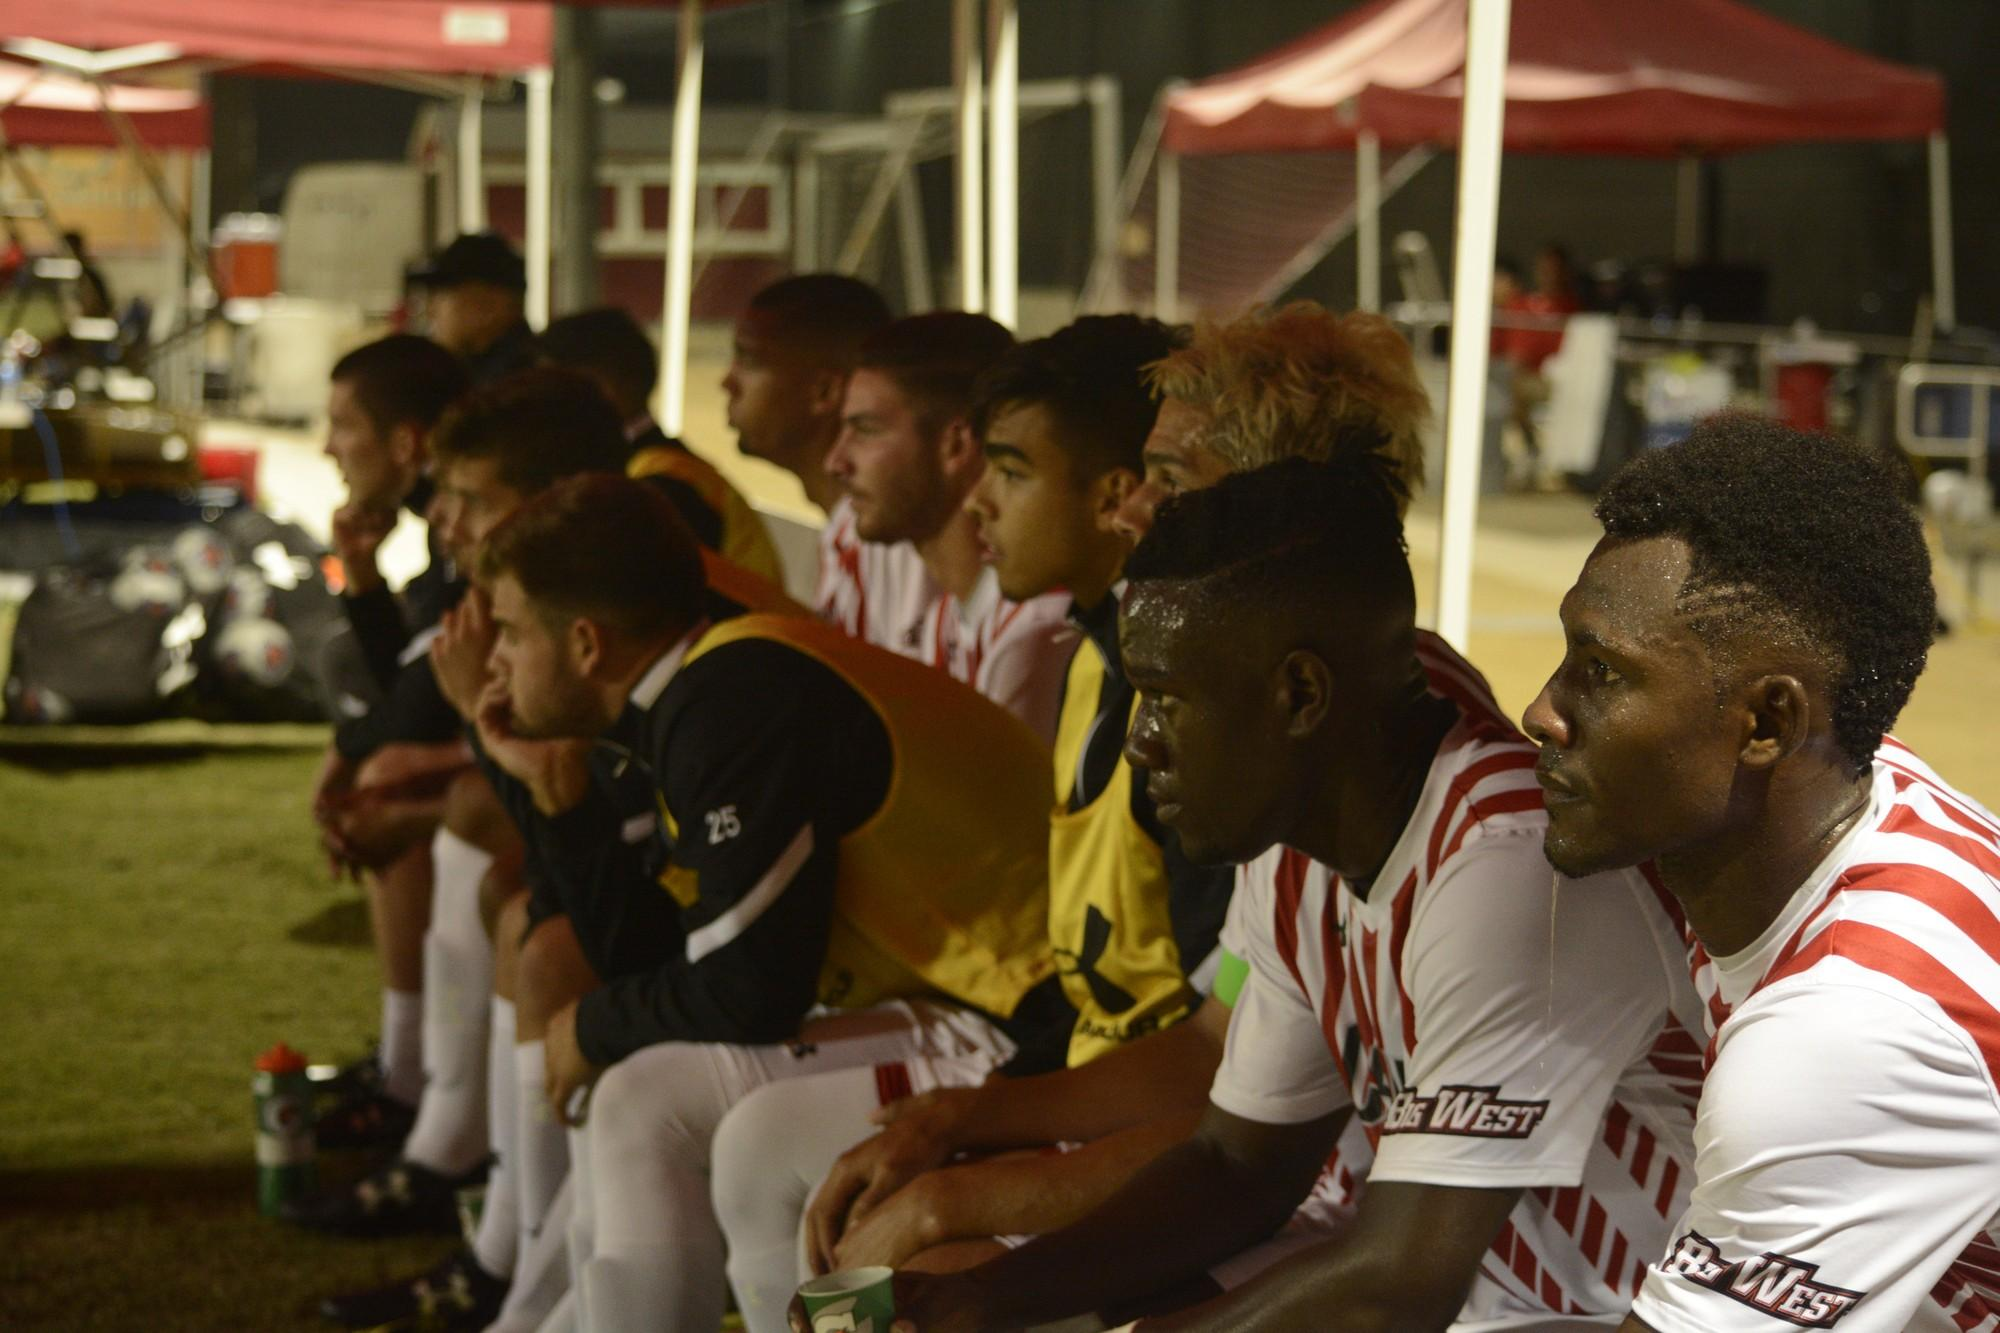 Team players watch on the sidelines